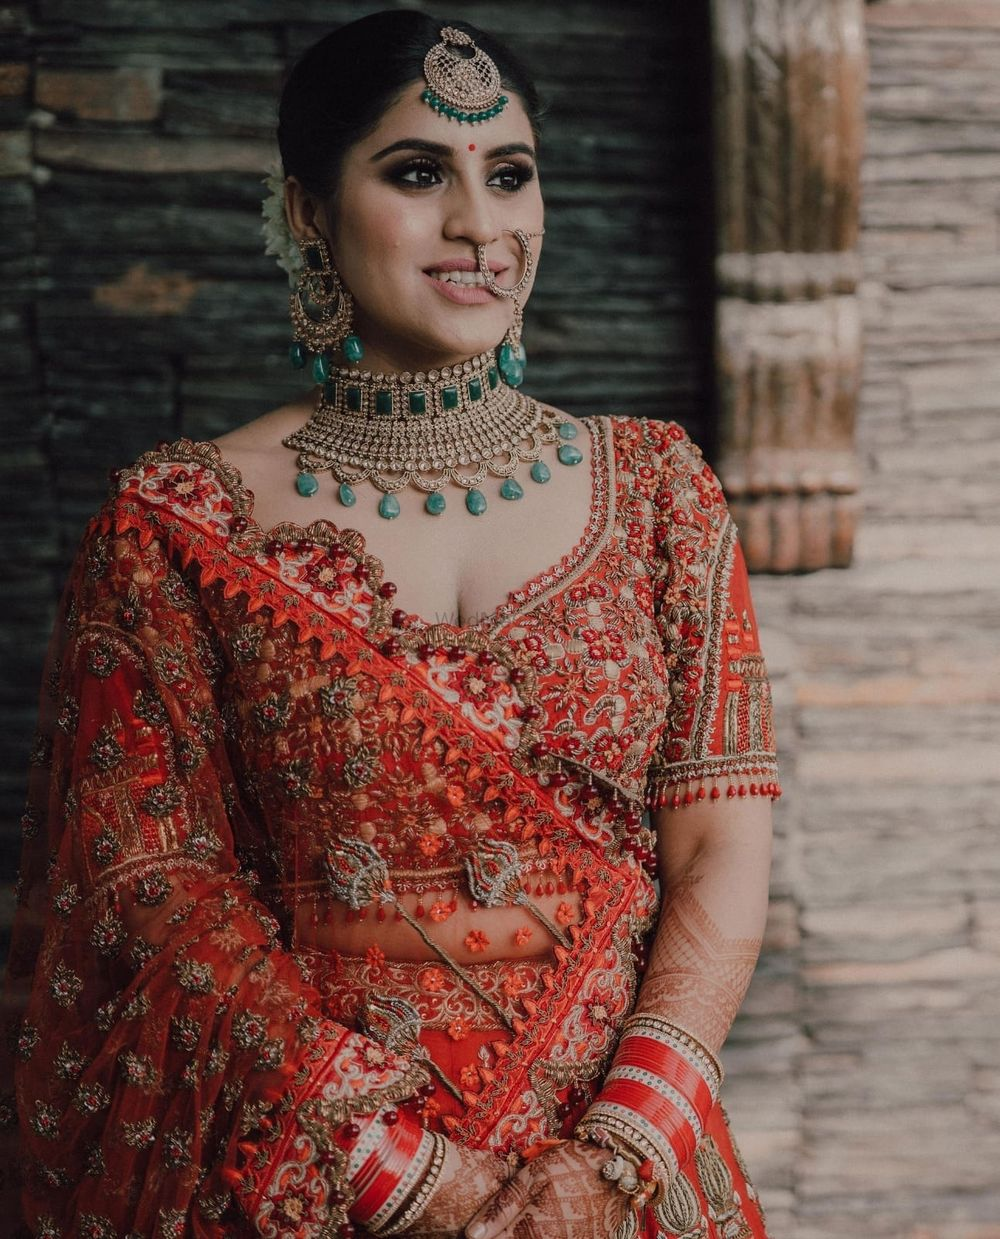 Photo of Bride wearing a red lehenga and posing on her wedding day.